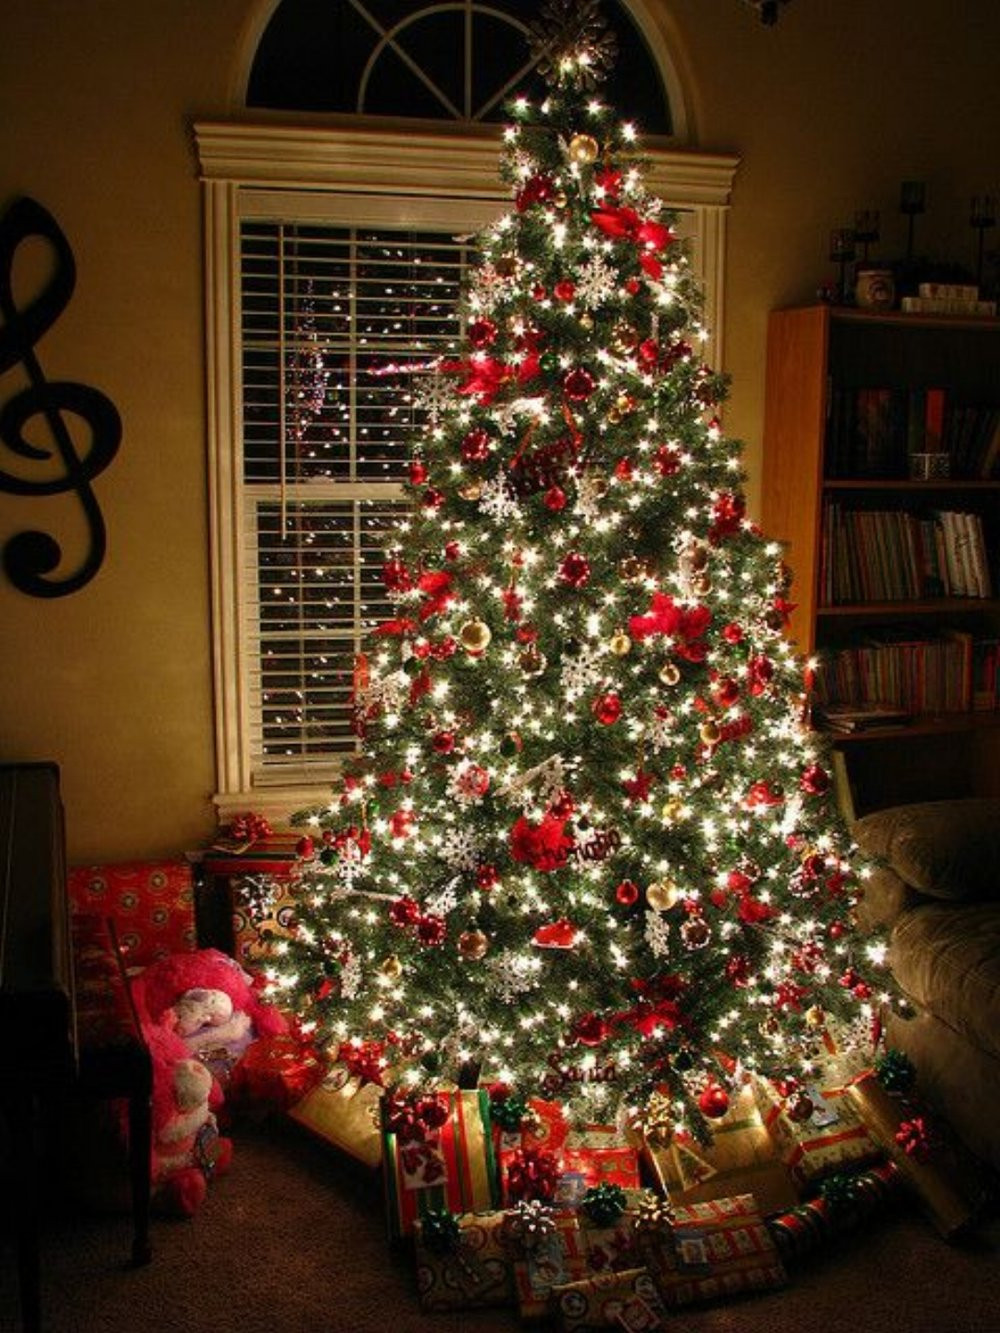 Christmas Decorators Lovely 20 Awesome Christmas Tree Decorating Ideas & Inspirations Of Christmas Decorators New 46 Beautiful Christmas Porch Decorating Ideas — Style Estate